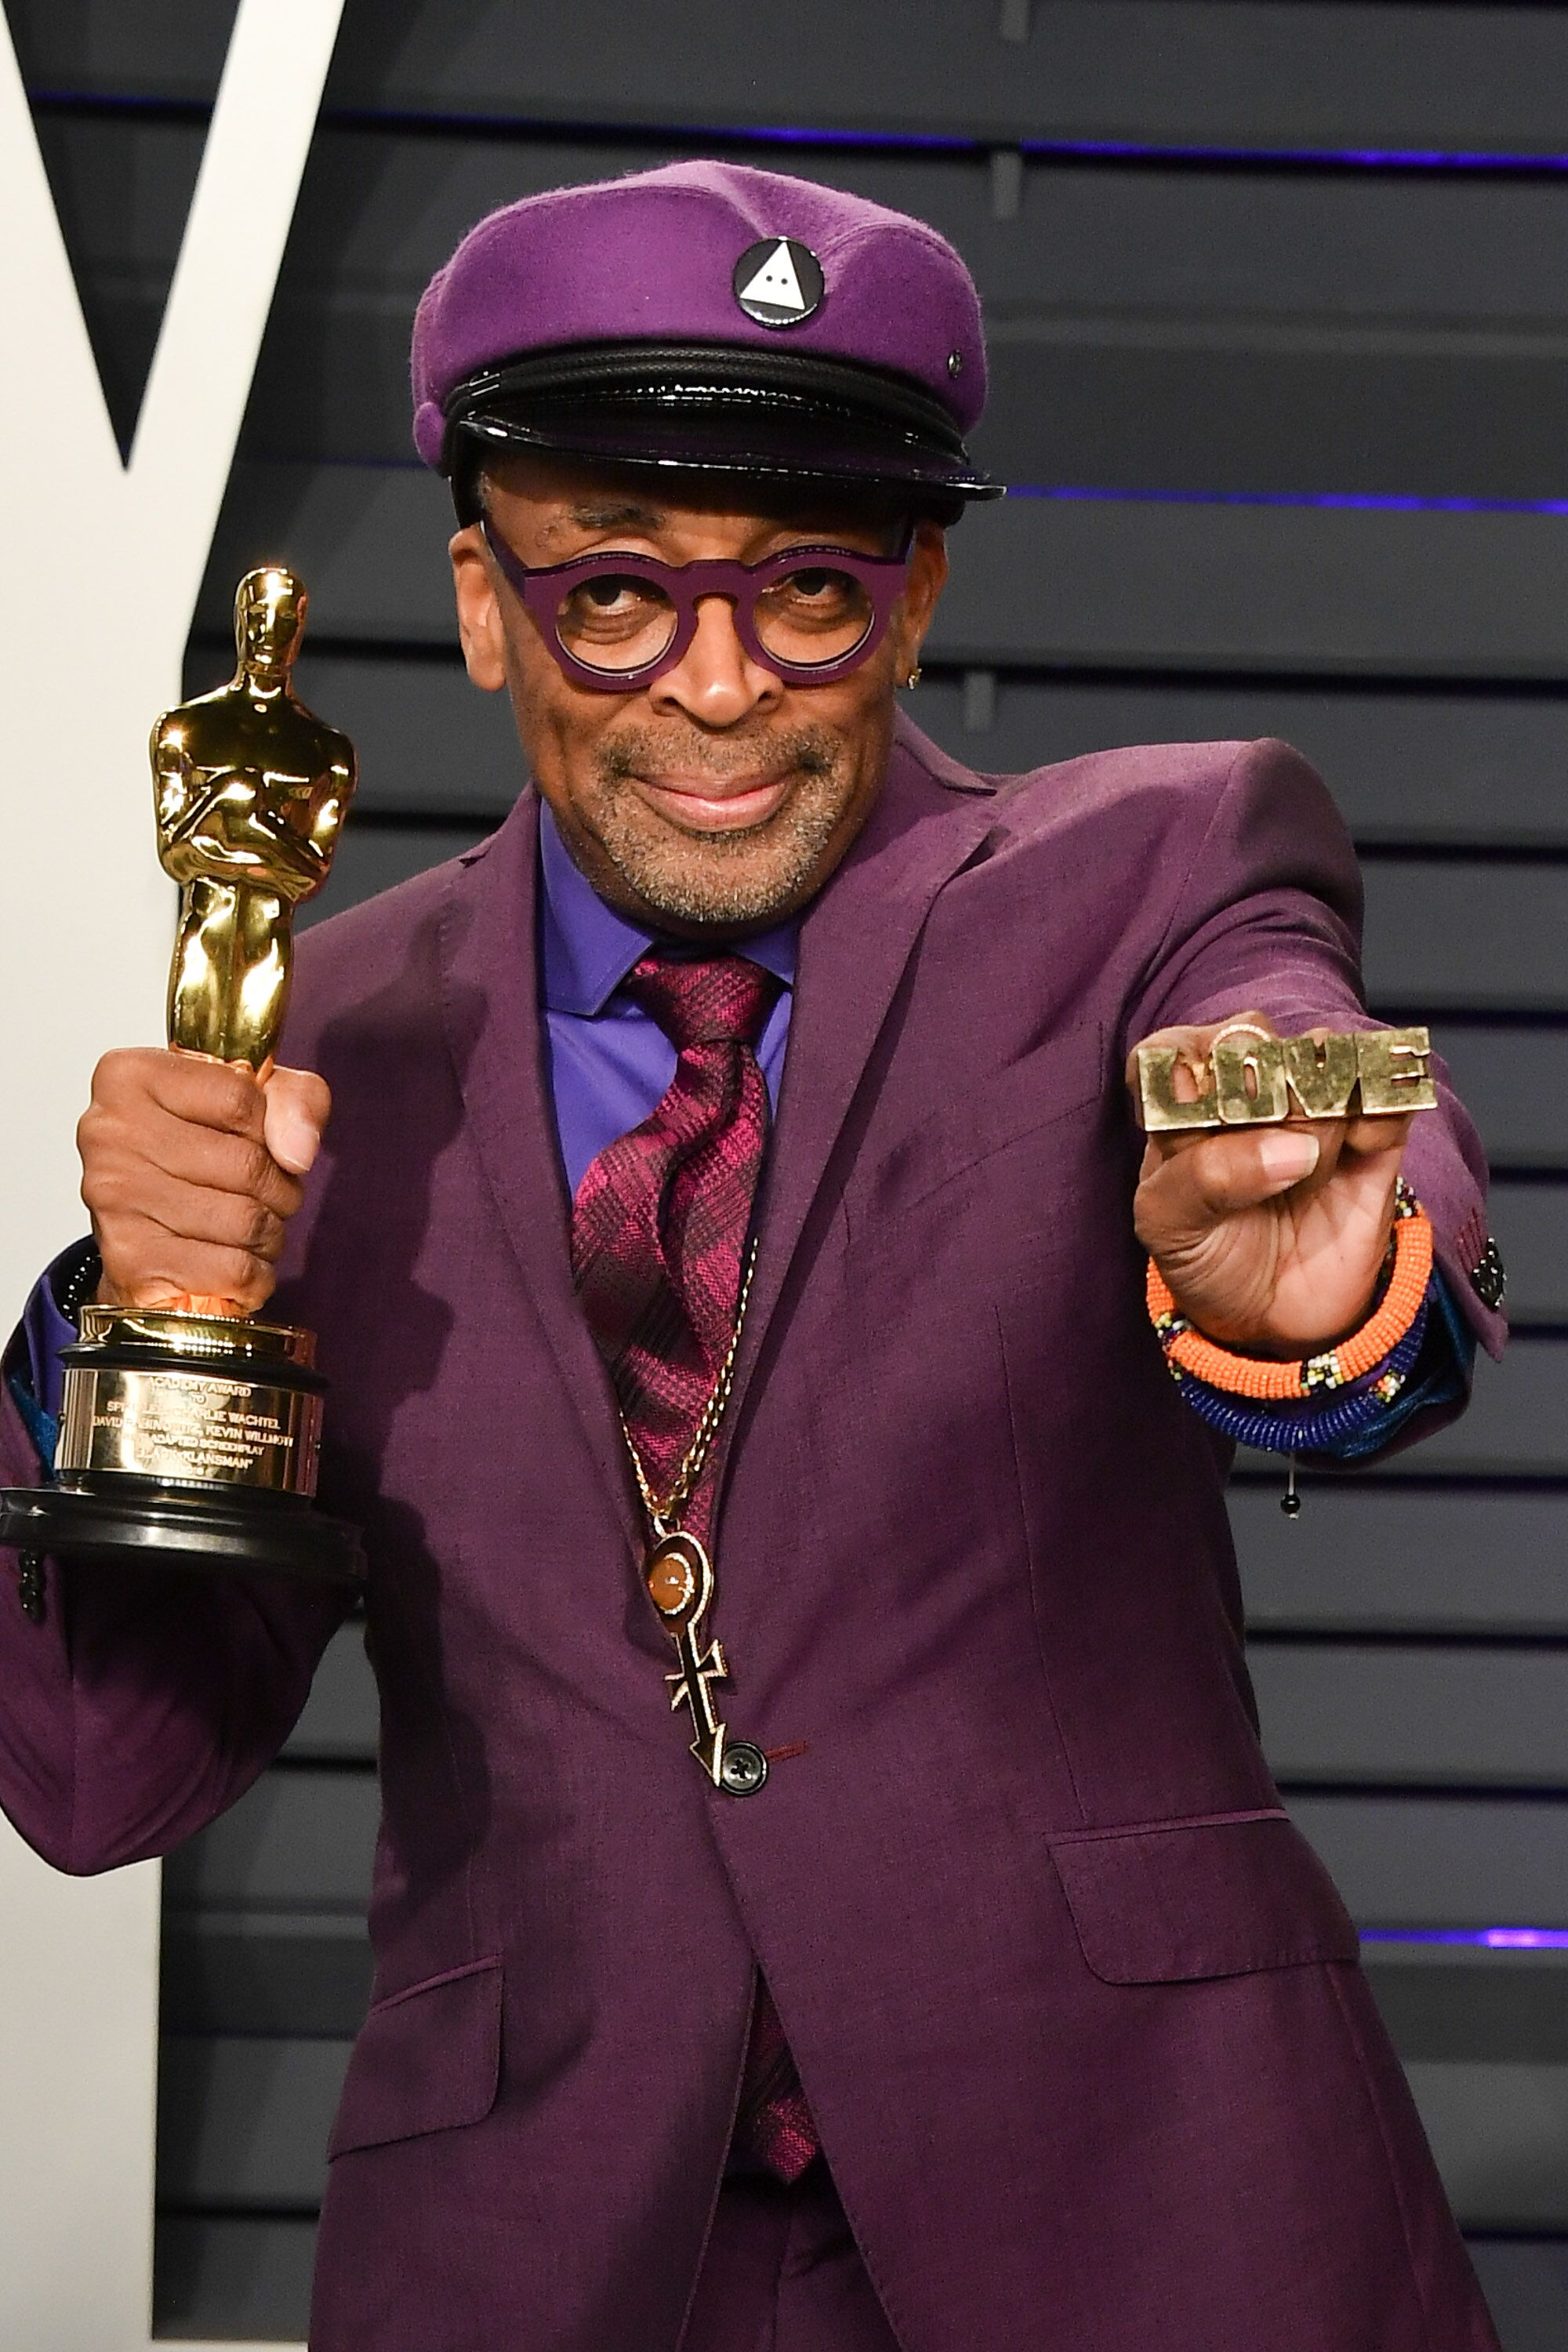 Spike Lee holding up his Oscar award for Best Director at the 2019 Academy Awards | Photo: Getty Images